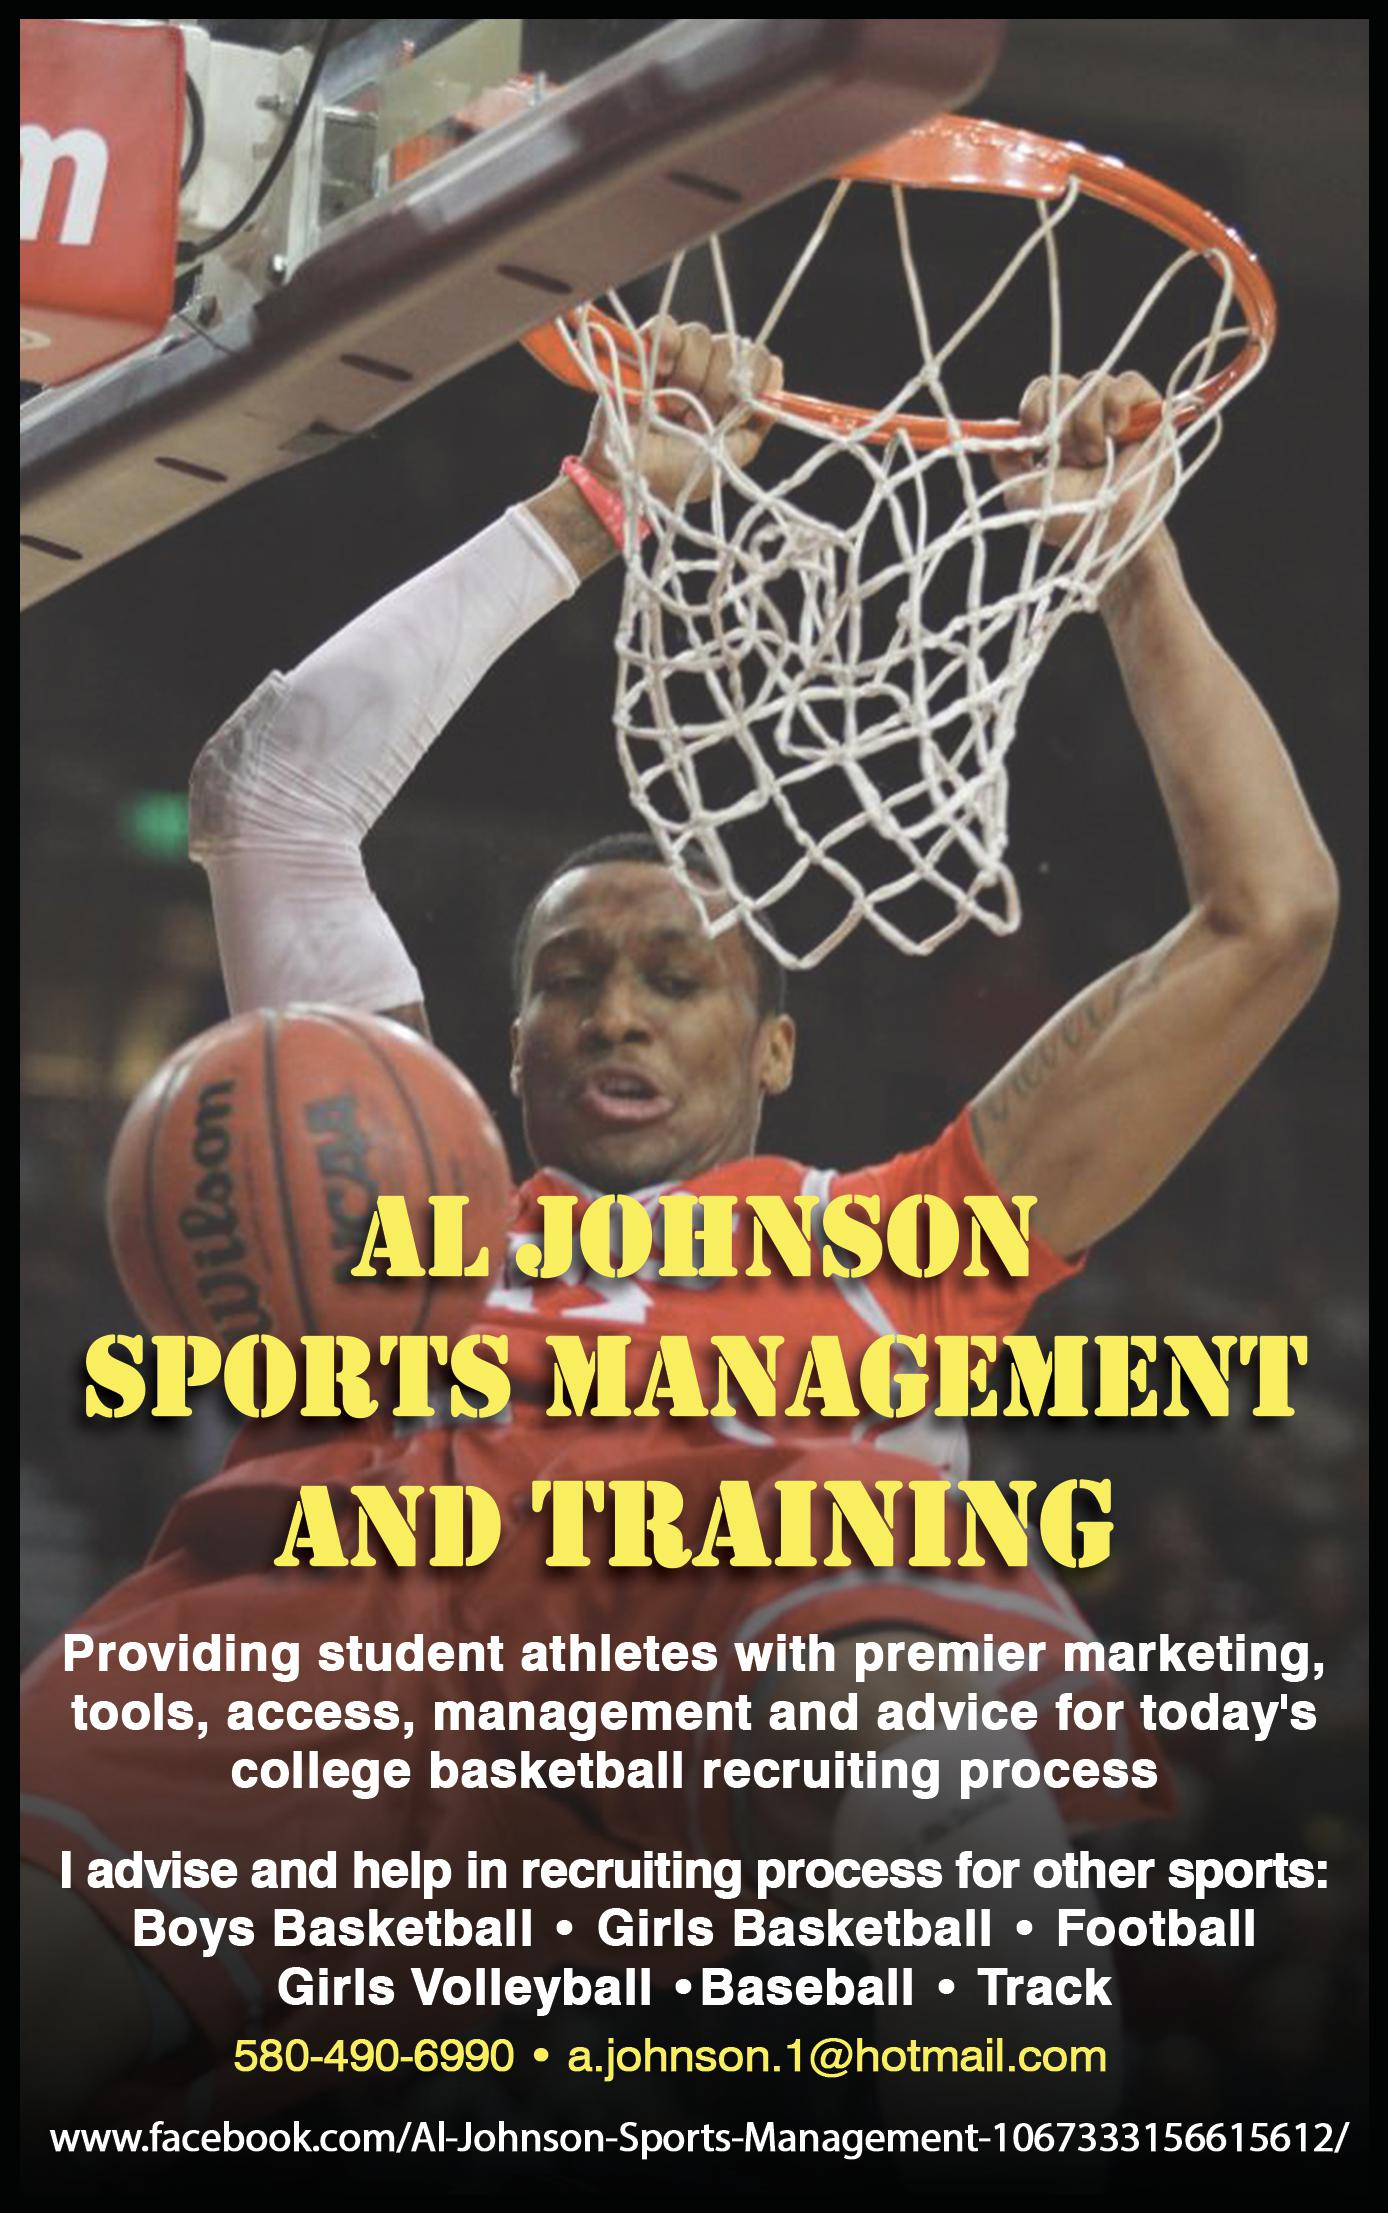 Al Johnson Sports Management and Training